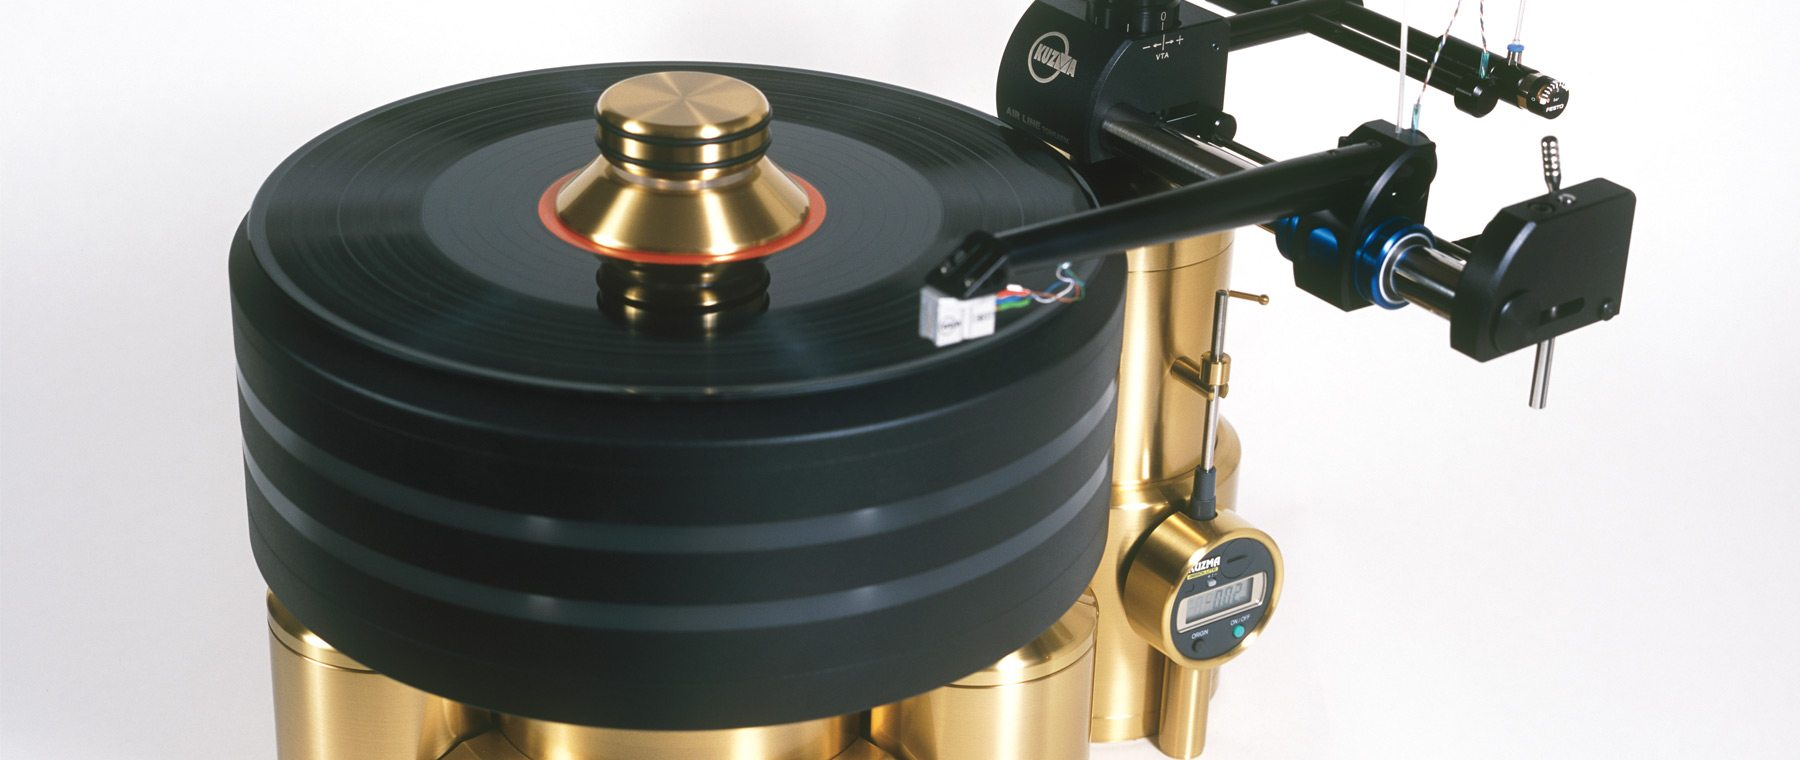 Would you pay 30,000 for a record player? Some would. Here's why